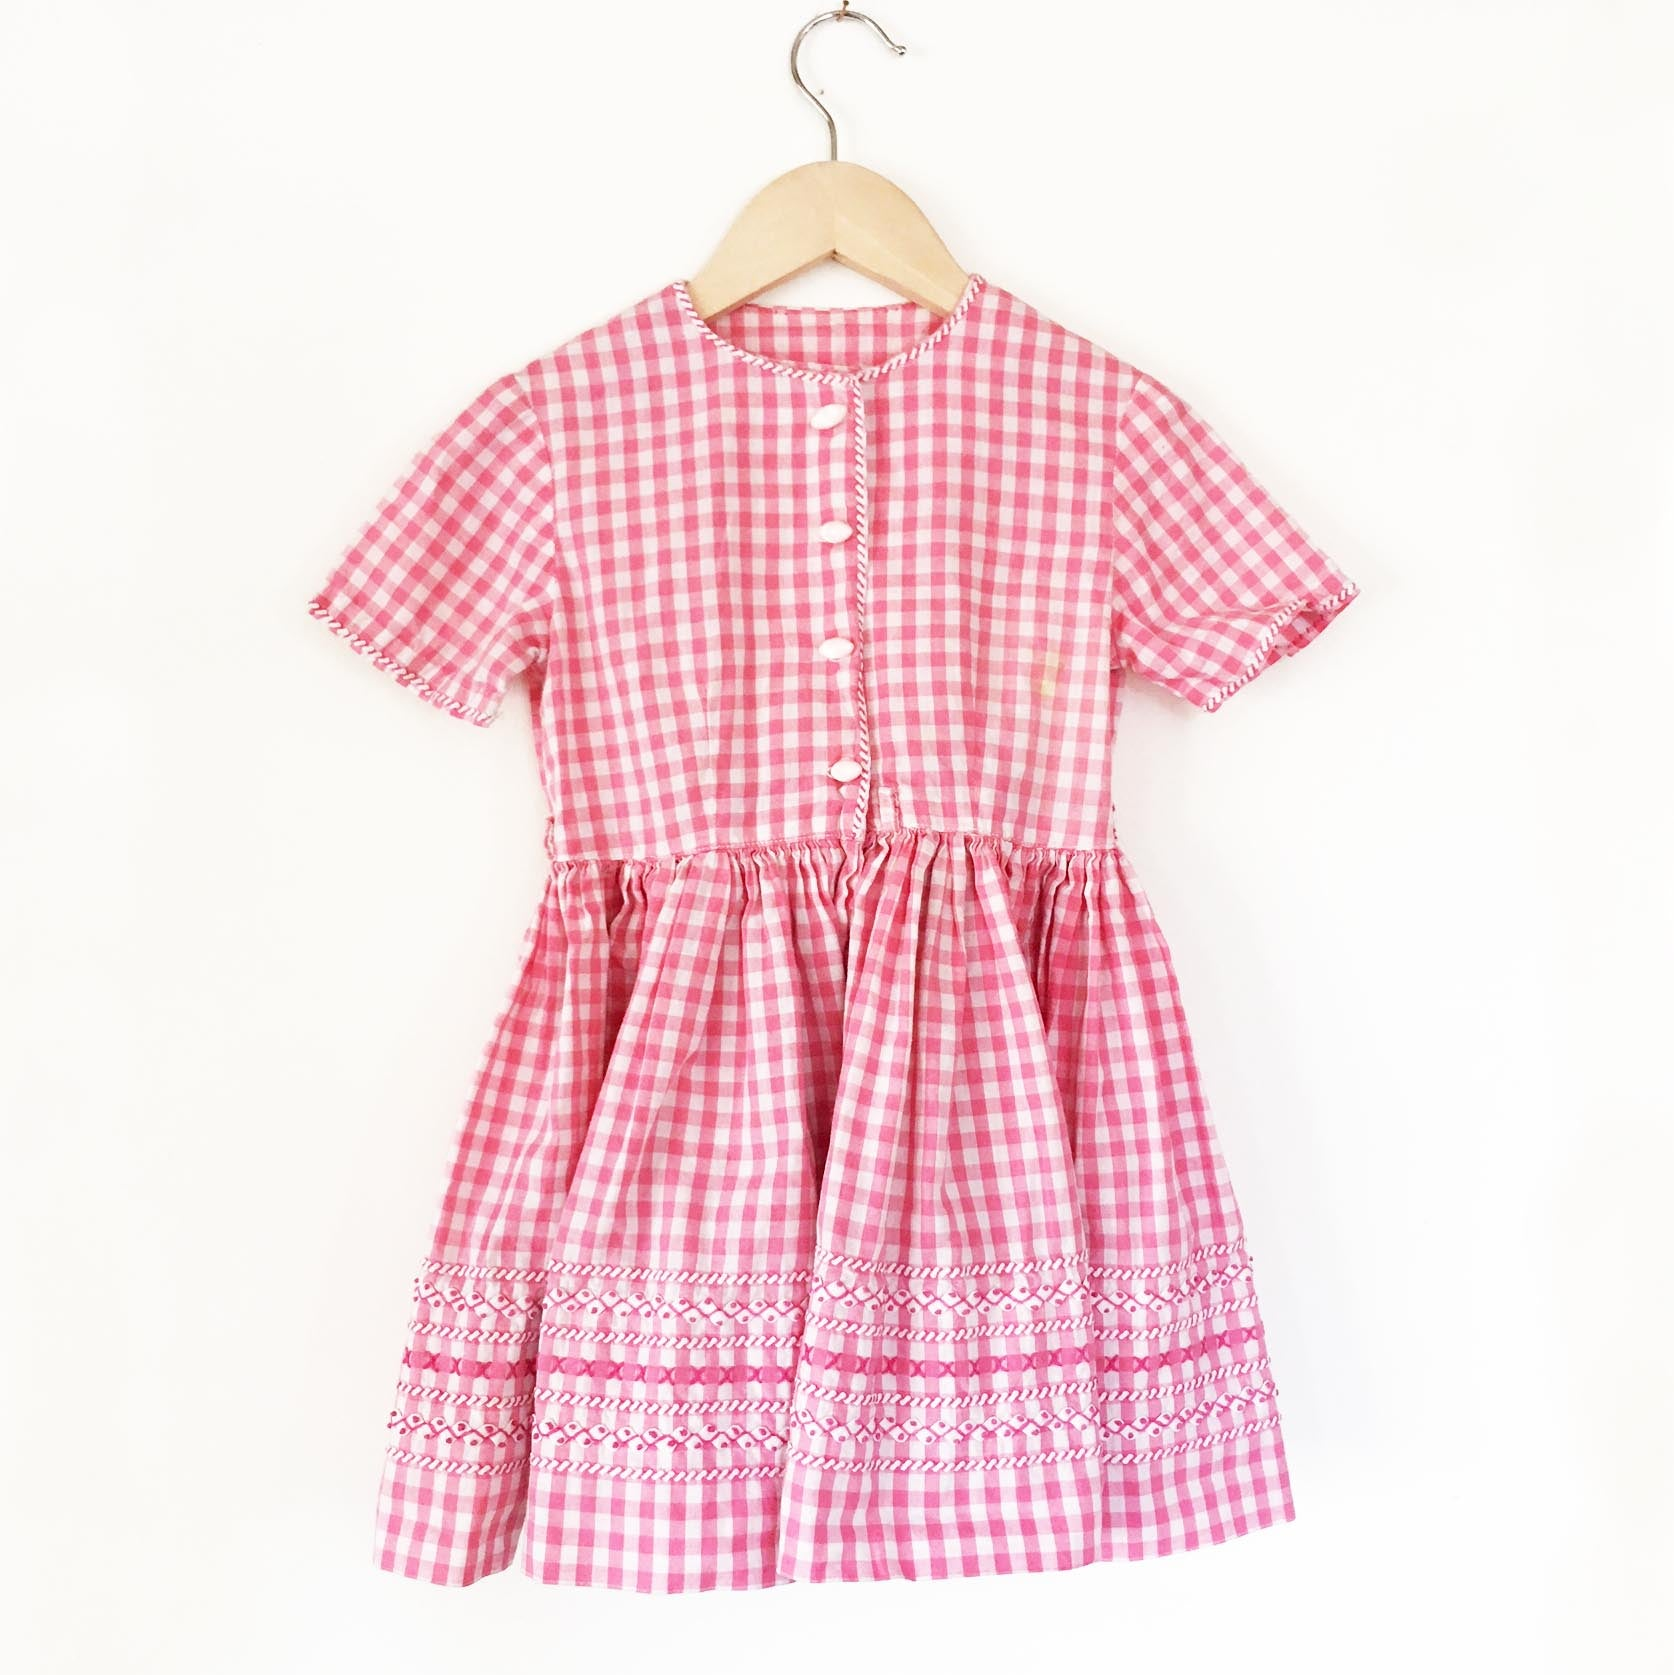 Gingham 40's dress size 3-4